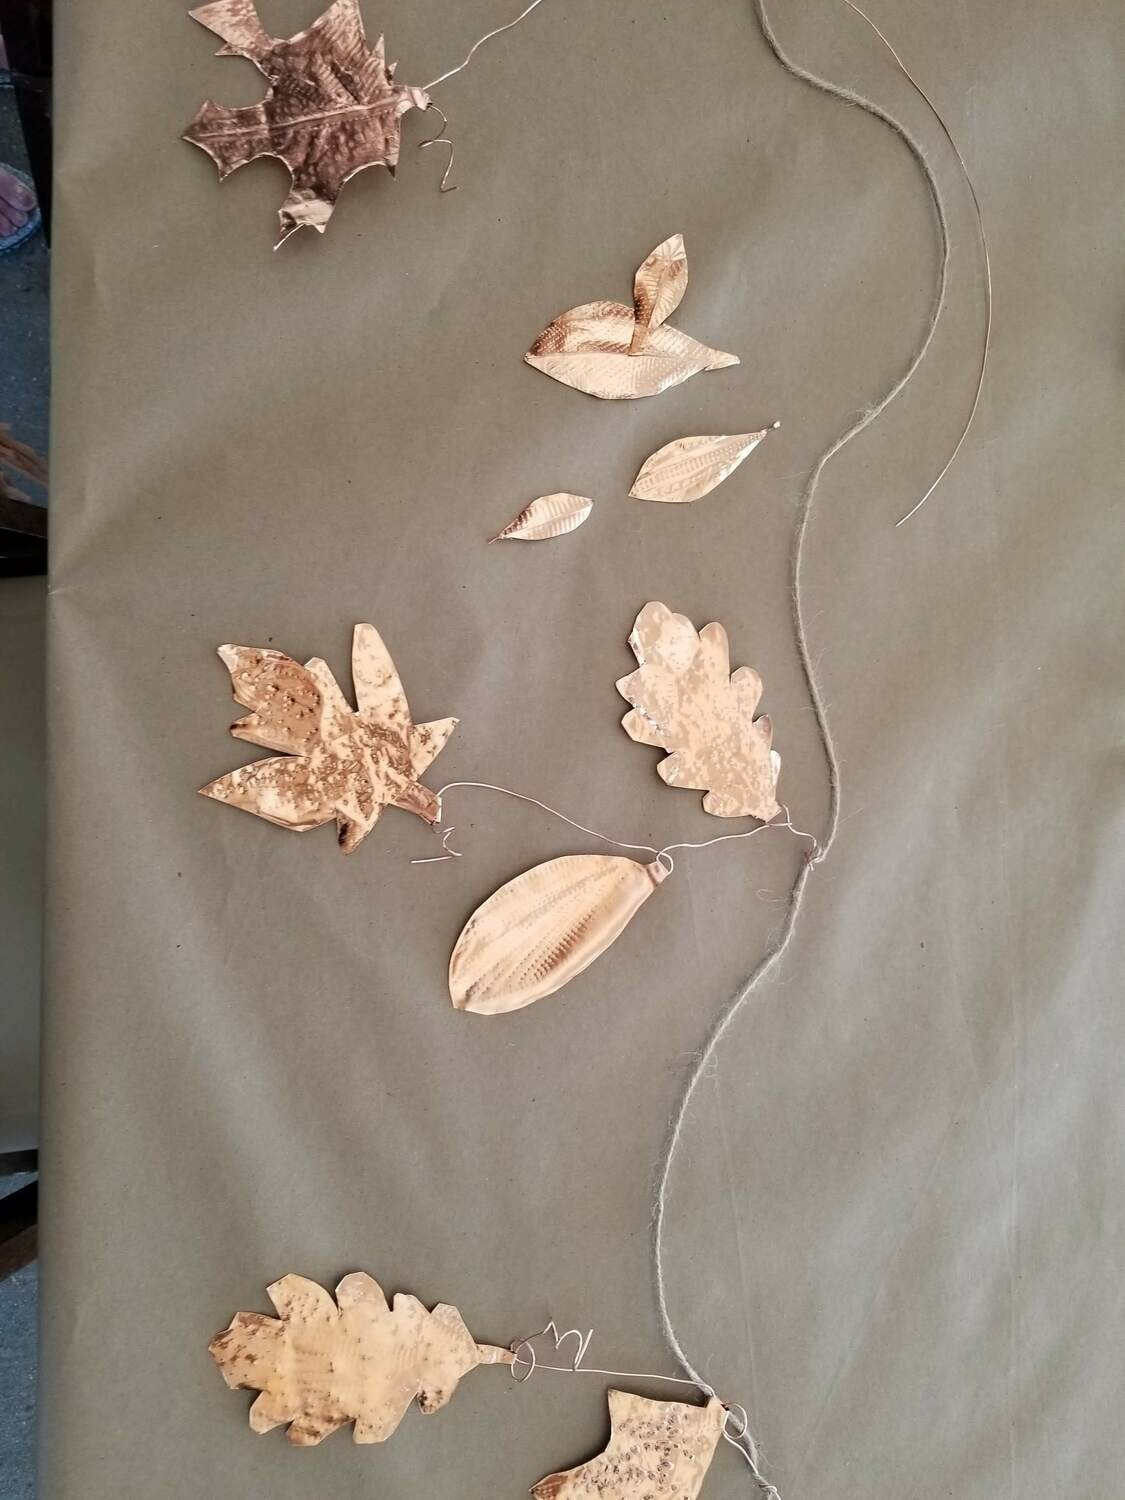 Make Your Own: Copper Leaf Wind Chime | SEP. 28